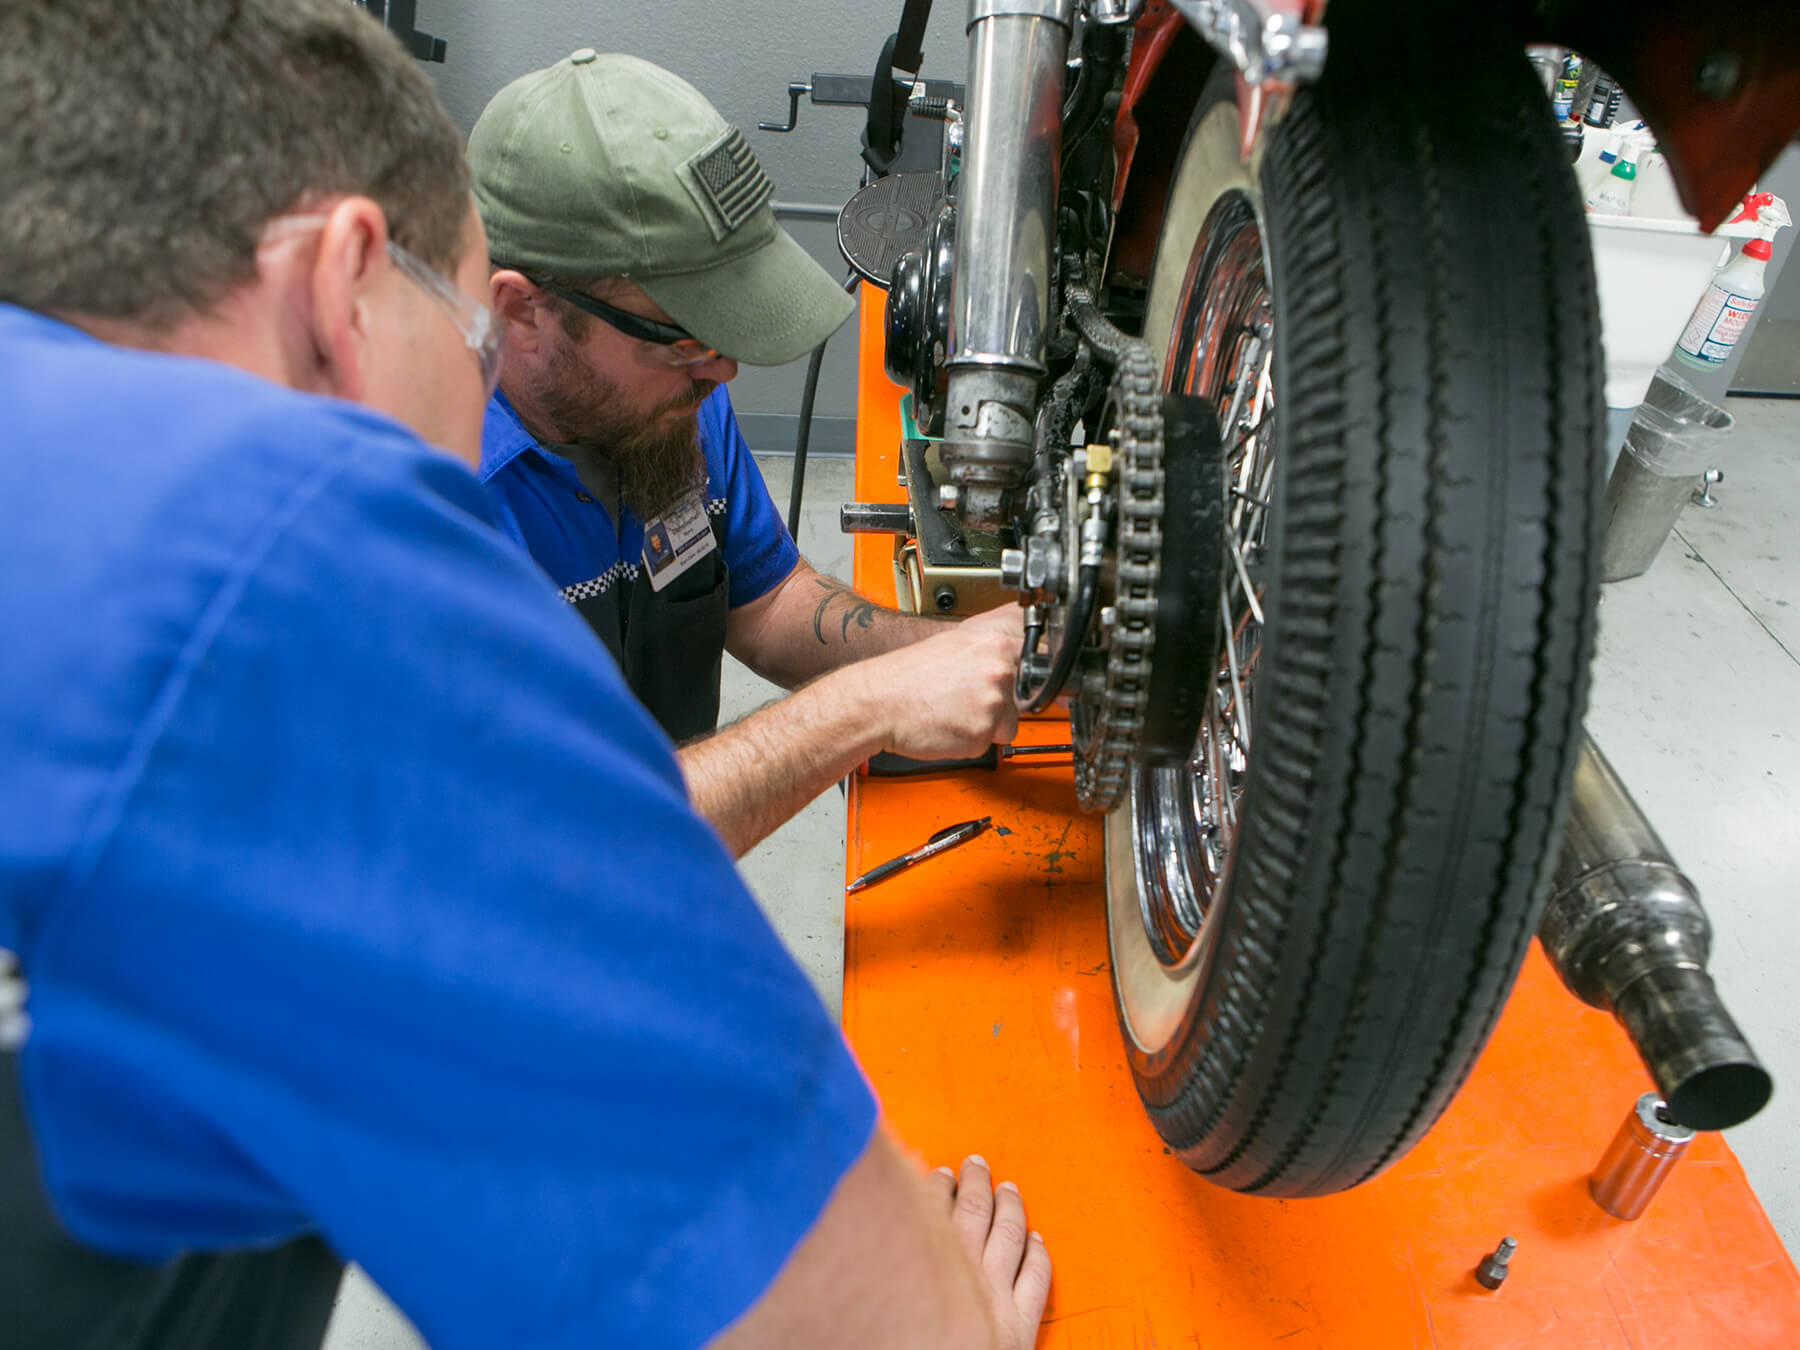 MMI students working on a motorcycle